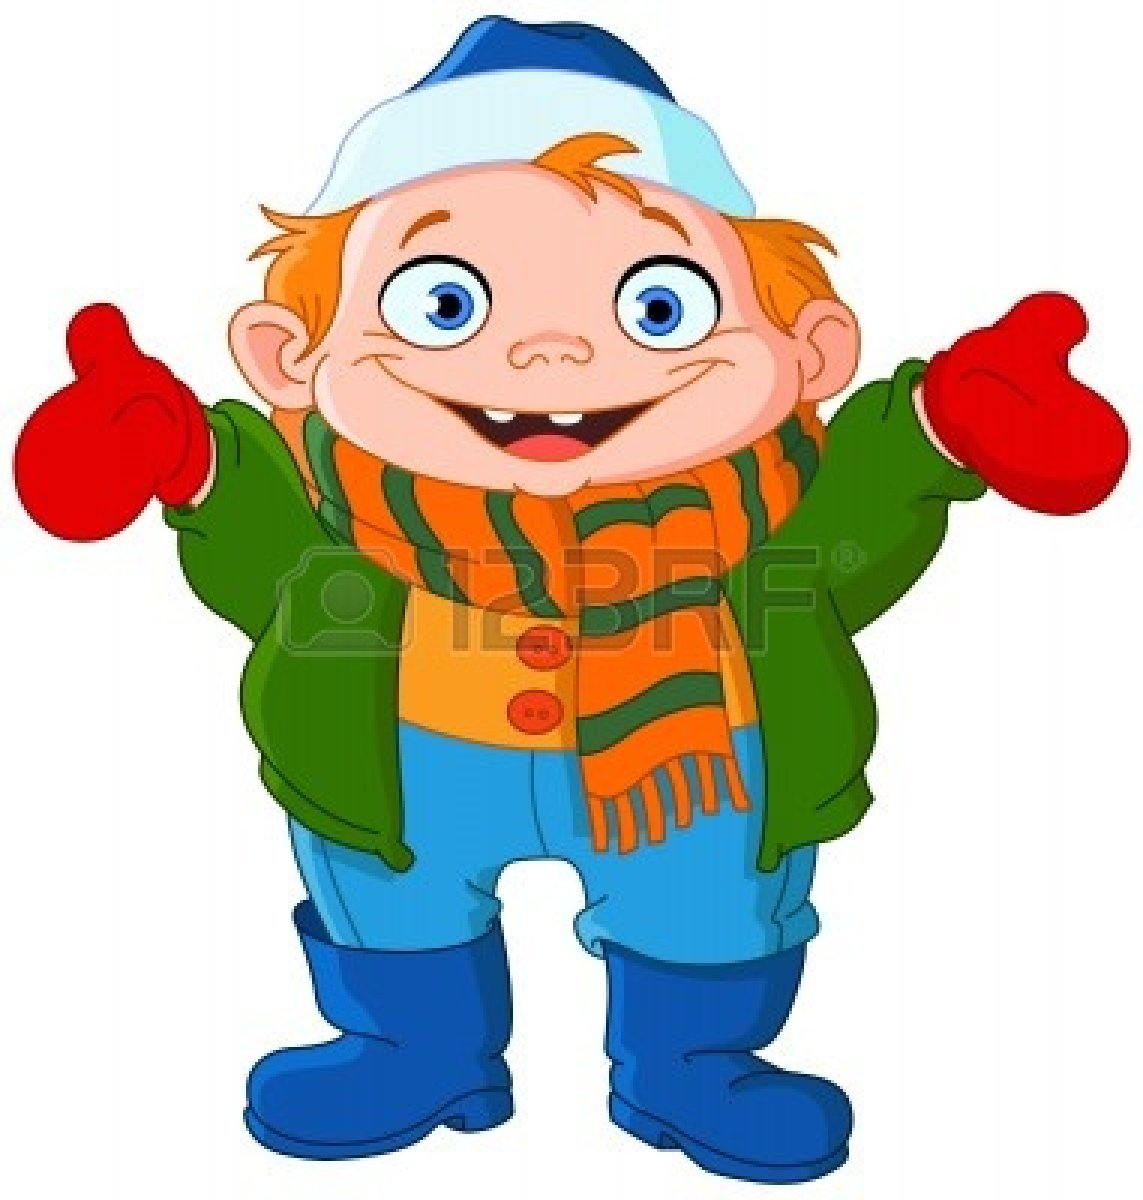 clipart winter clothing - photo #42